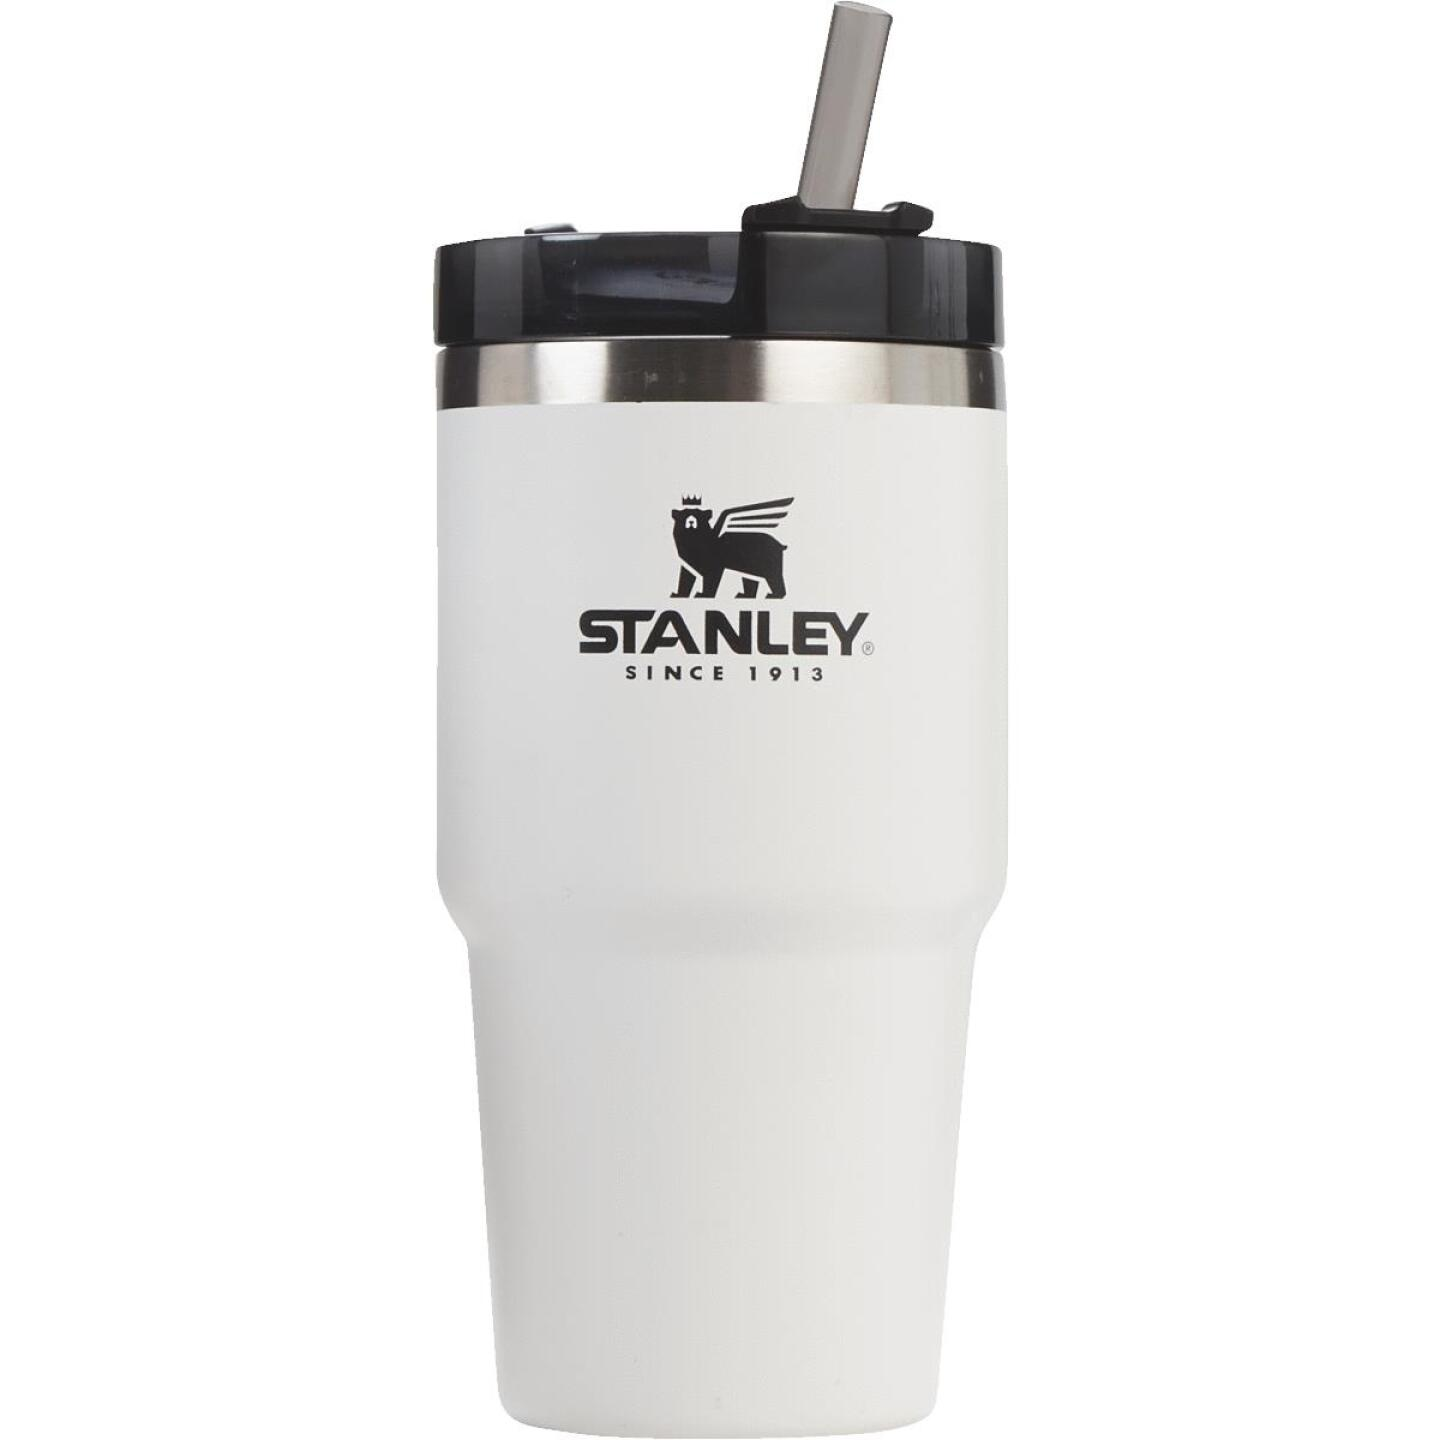 Stanley 20 Oz. Polar White Adventure Insulated Tumbler with Straw Image 1